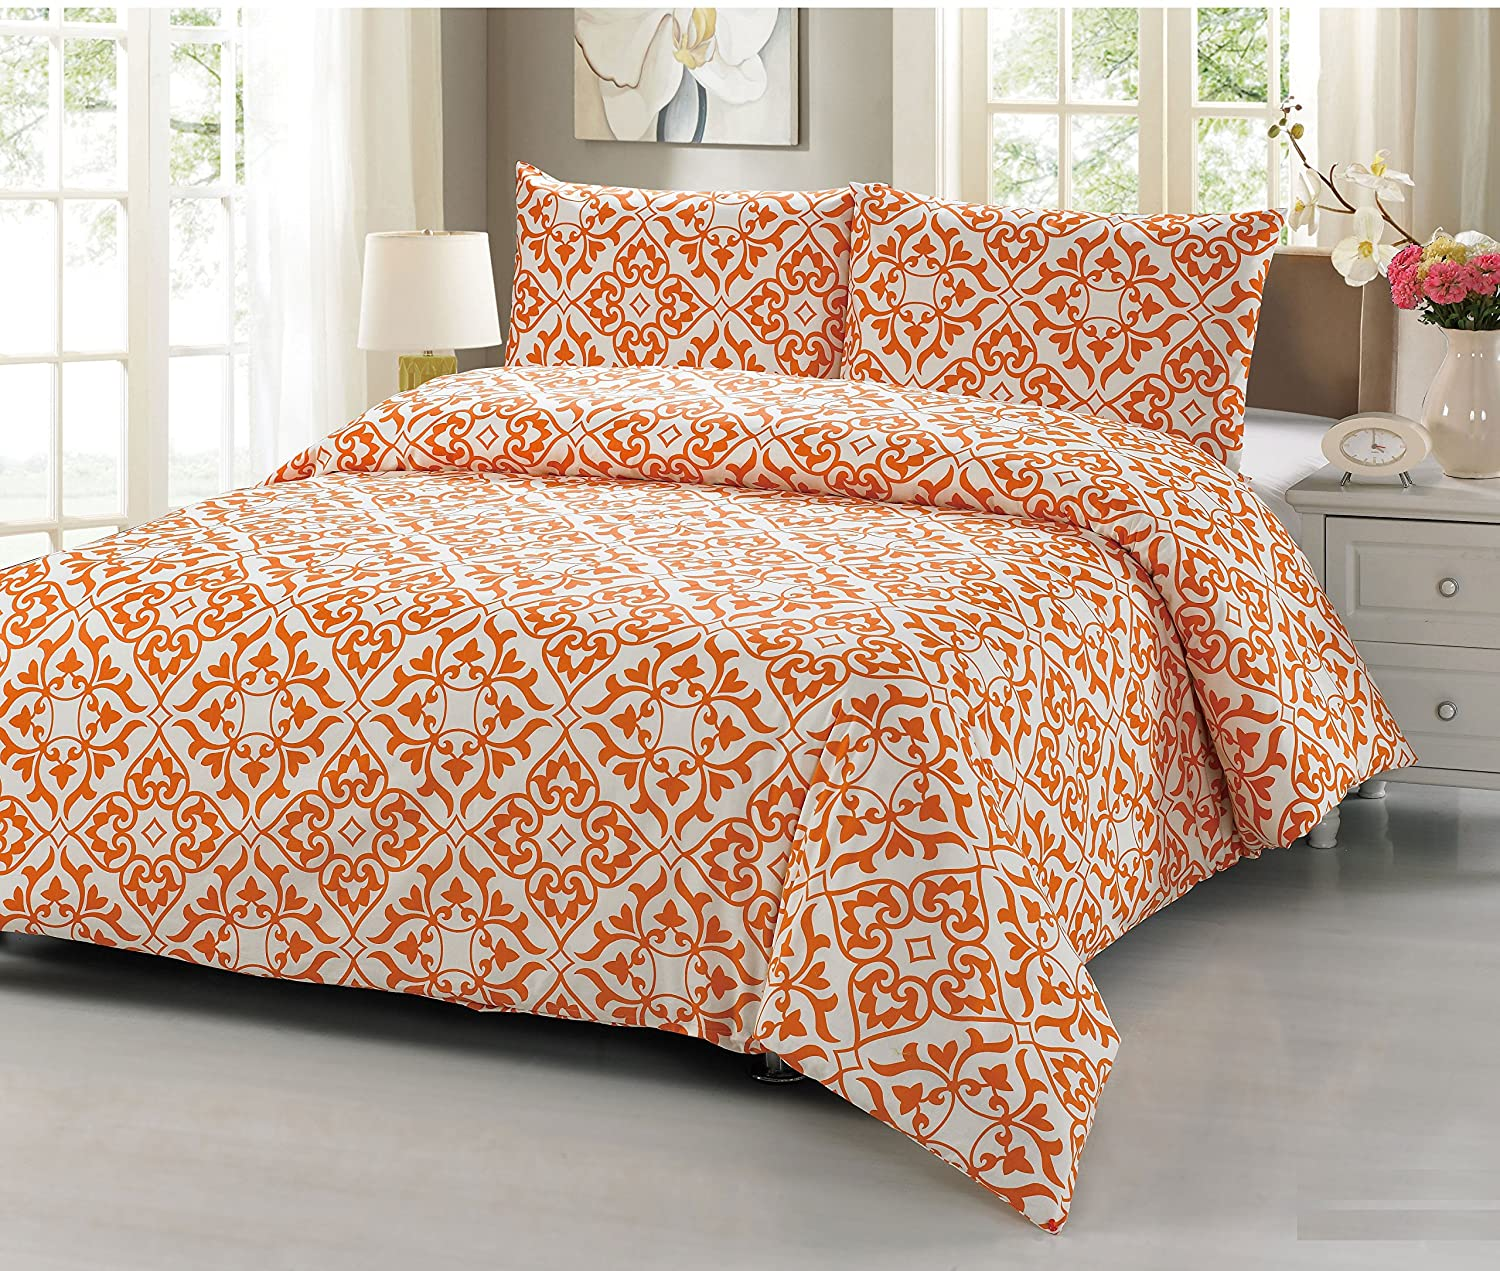 covers multi pillow dsc mandala orange bedding boho with hippie bedspread blue green index duvet